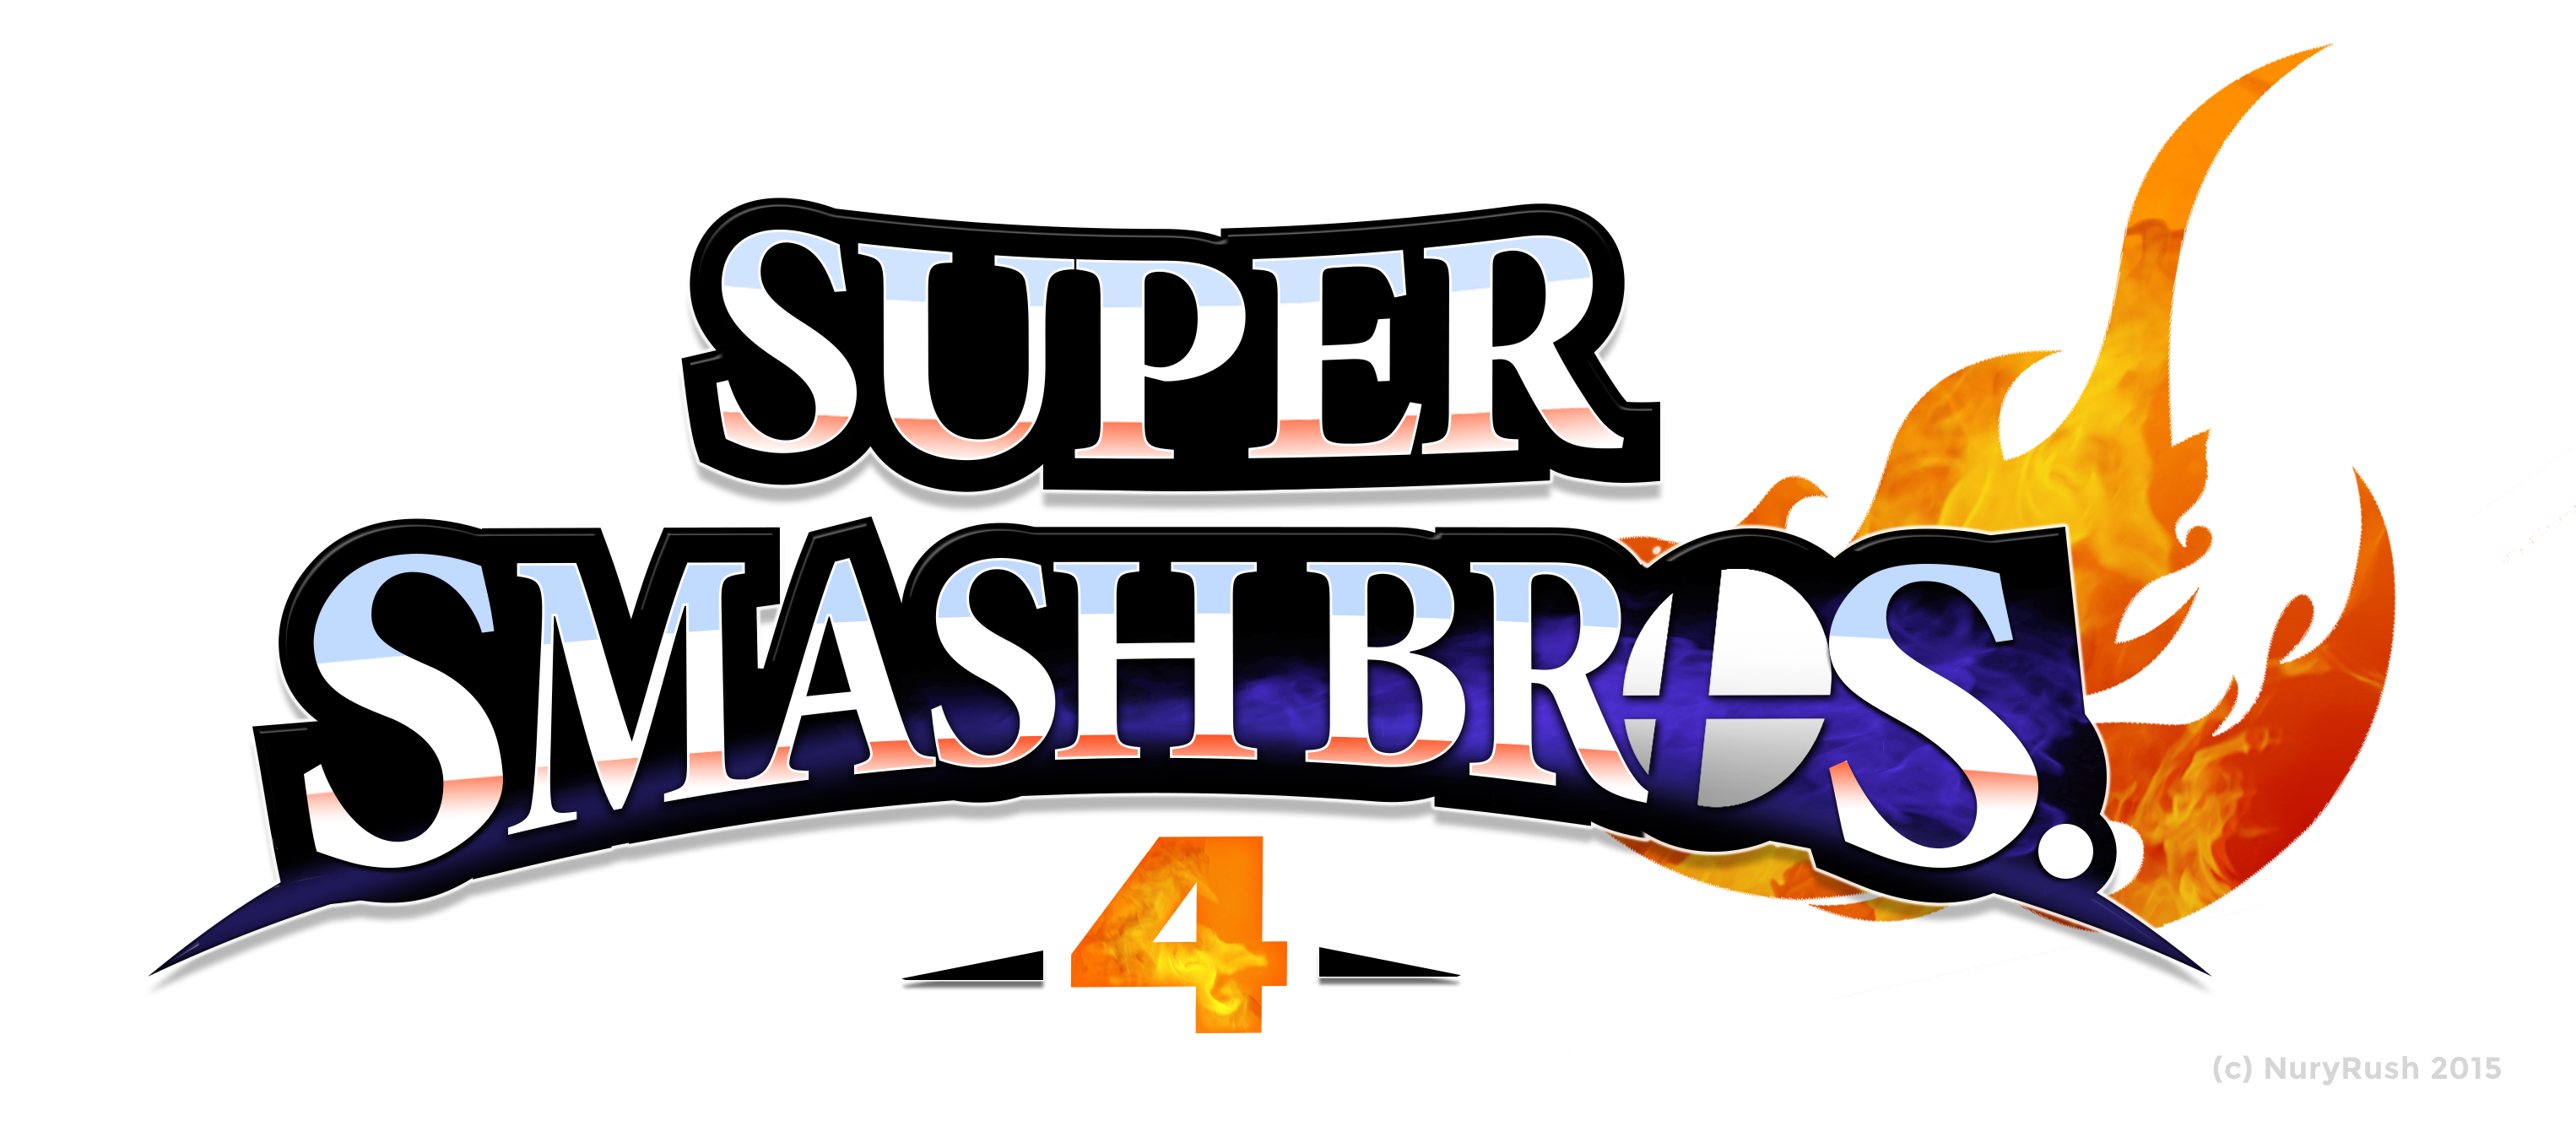 Super Smash Bros Logo Remade Nuryrush Unlock Characters Ultimate